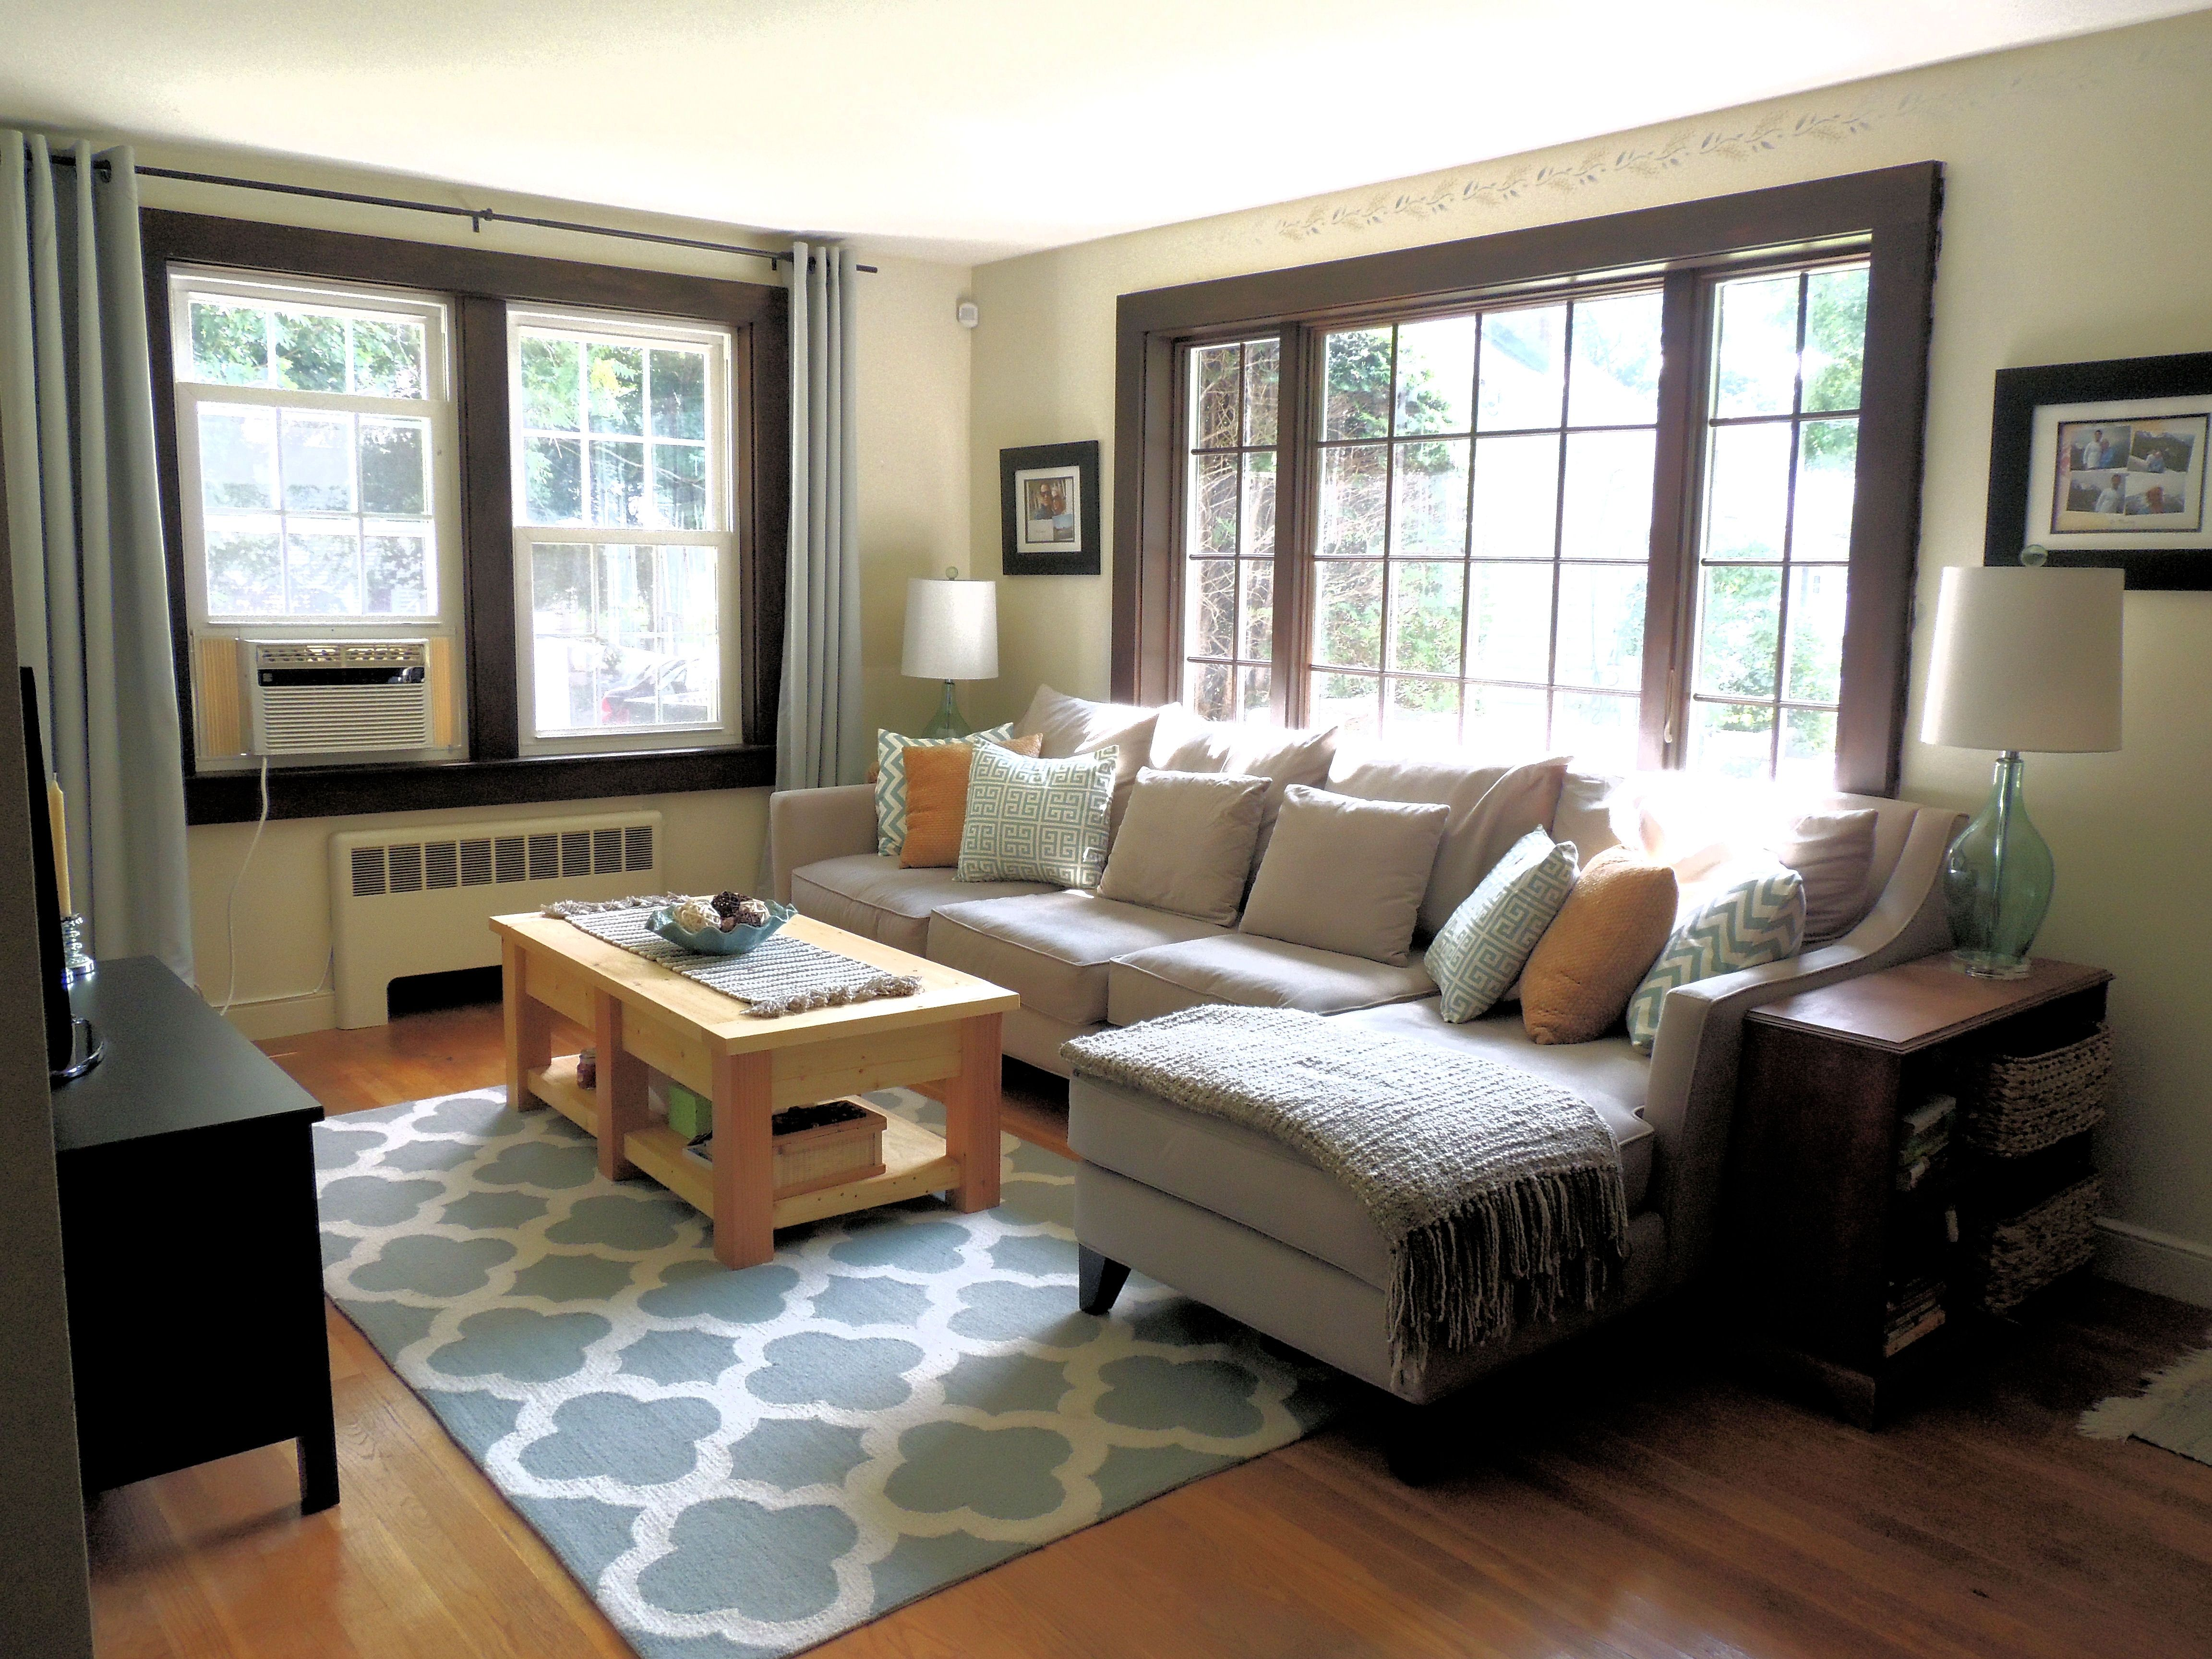 crate and barrel living room inspiration - Google Search ...